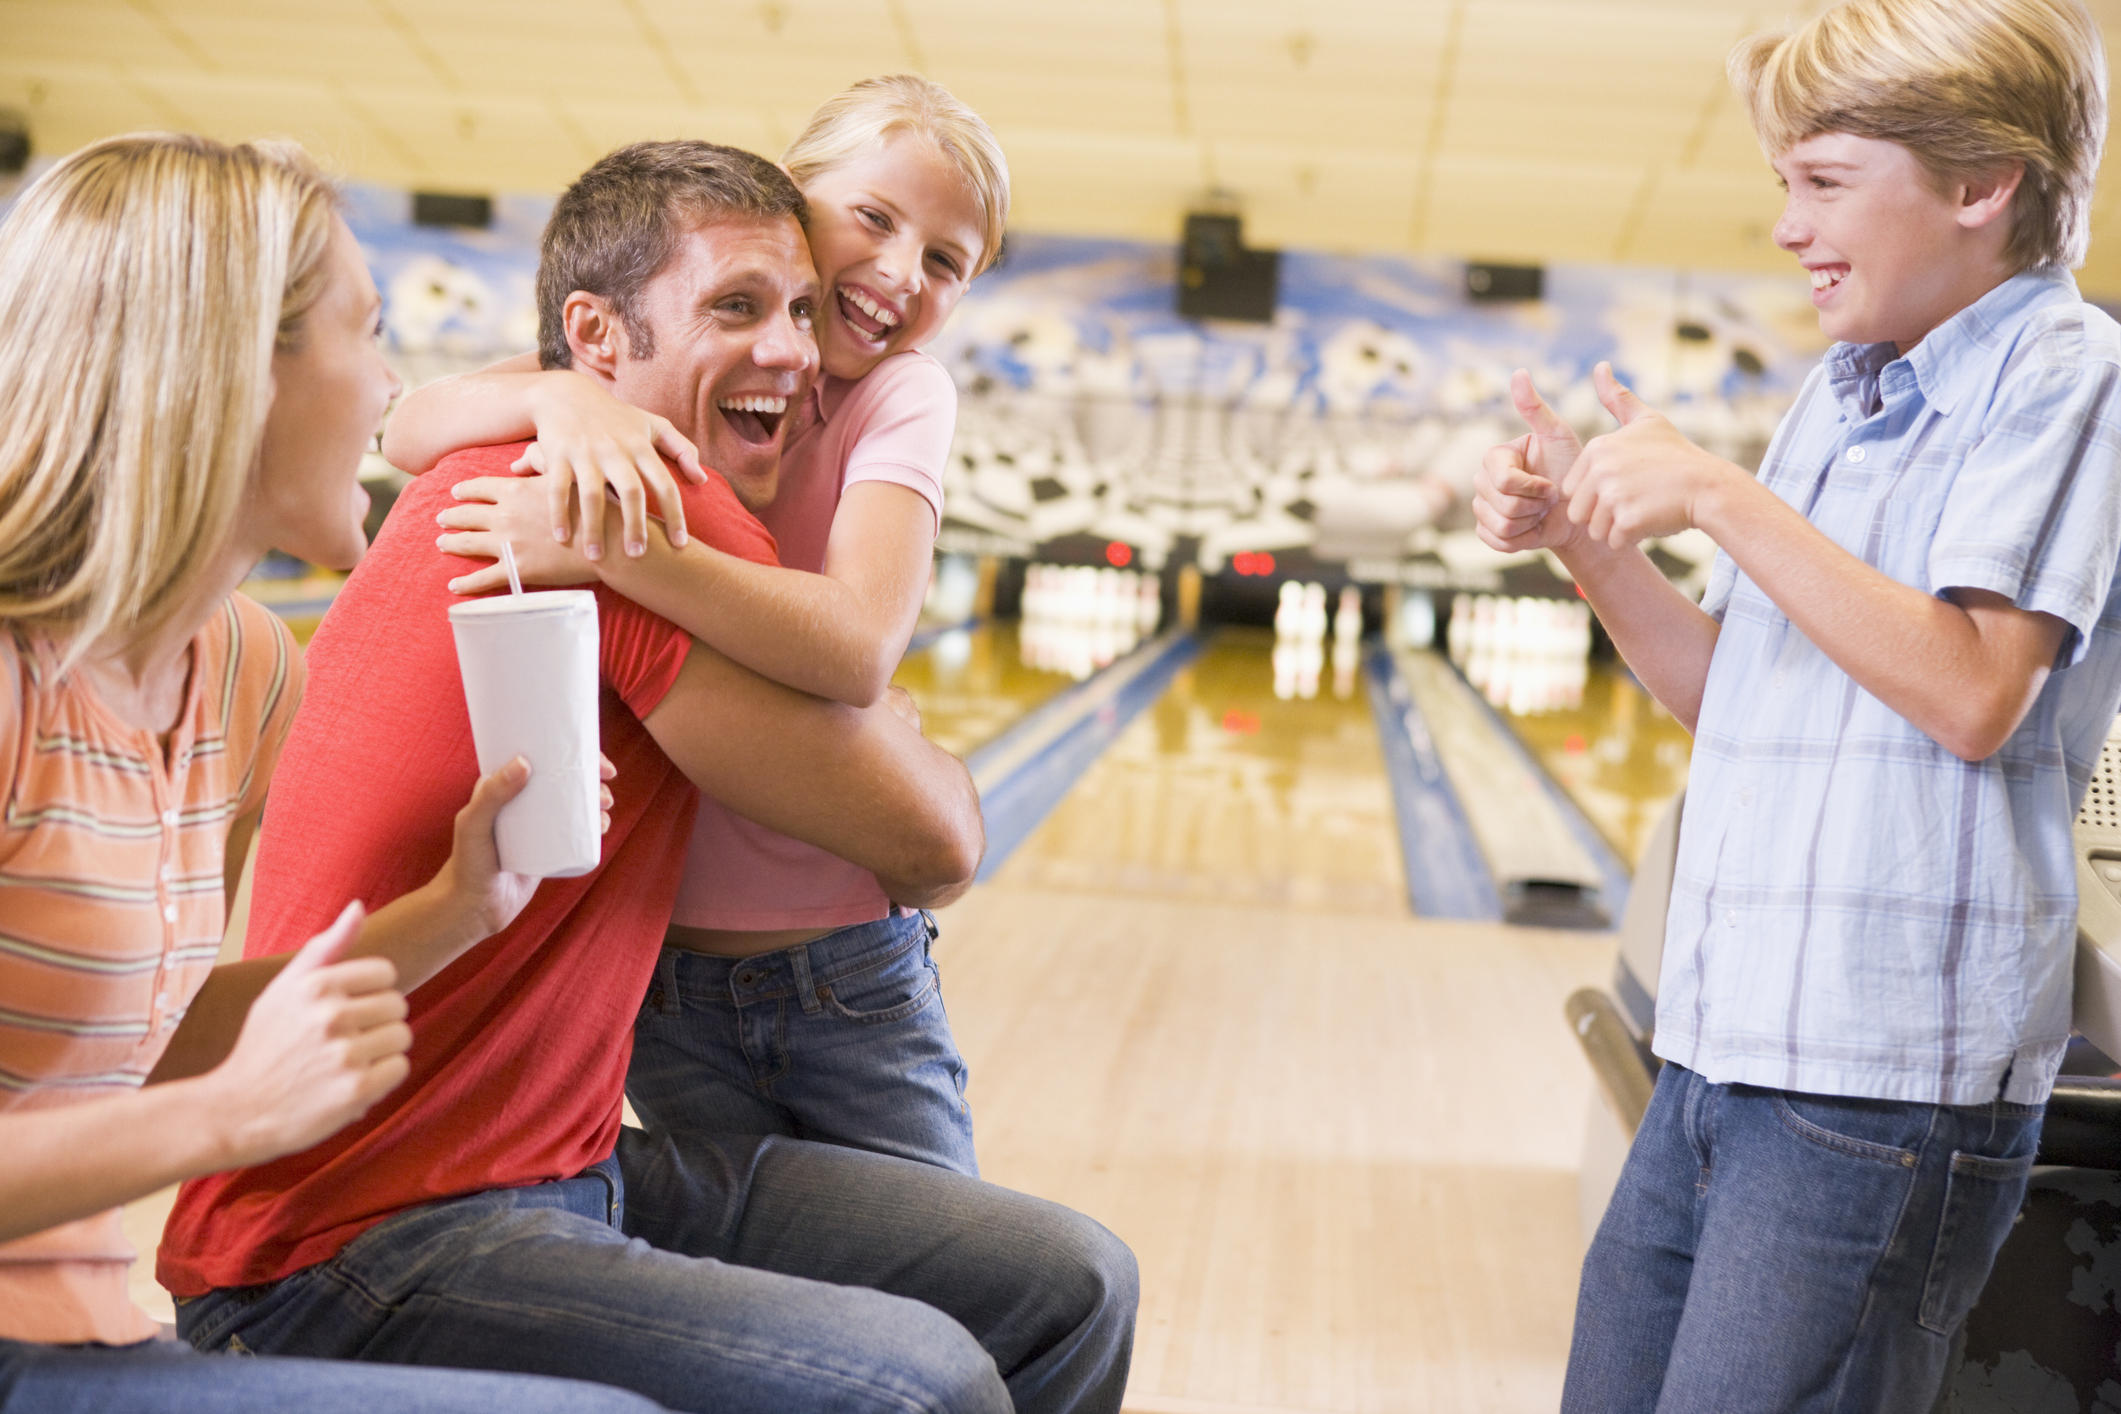 Family in bowling alley cheering and smiling. Family celebrating together, Father and daughter embracing.